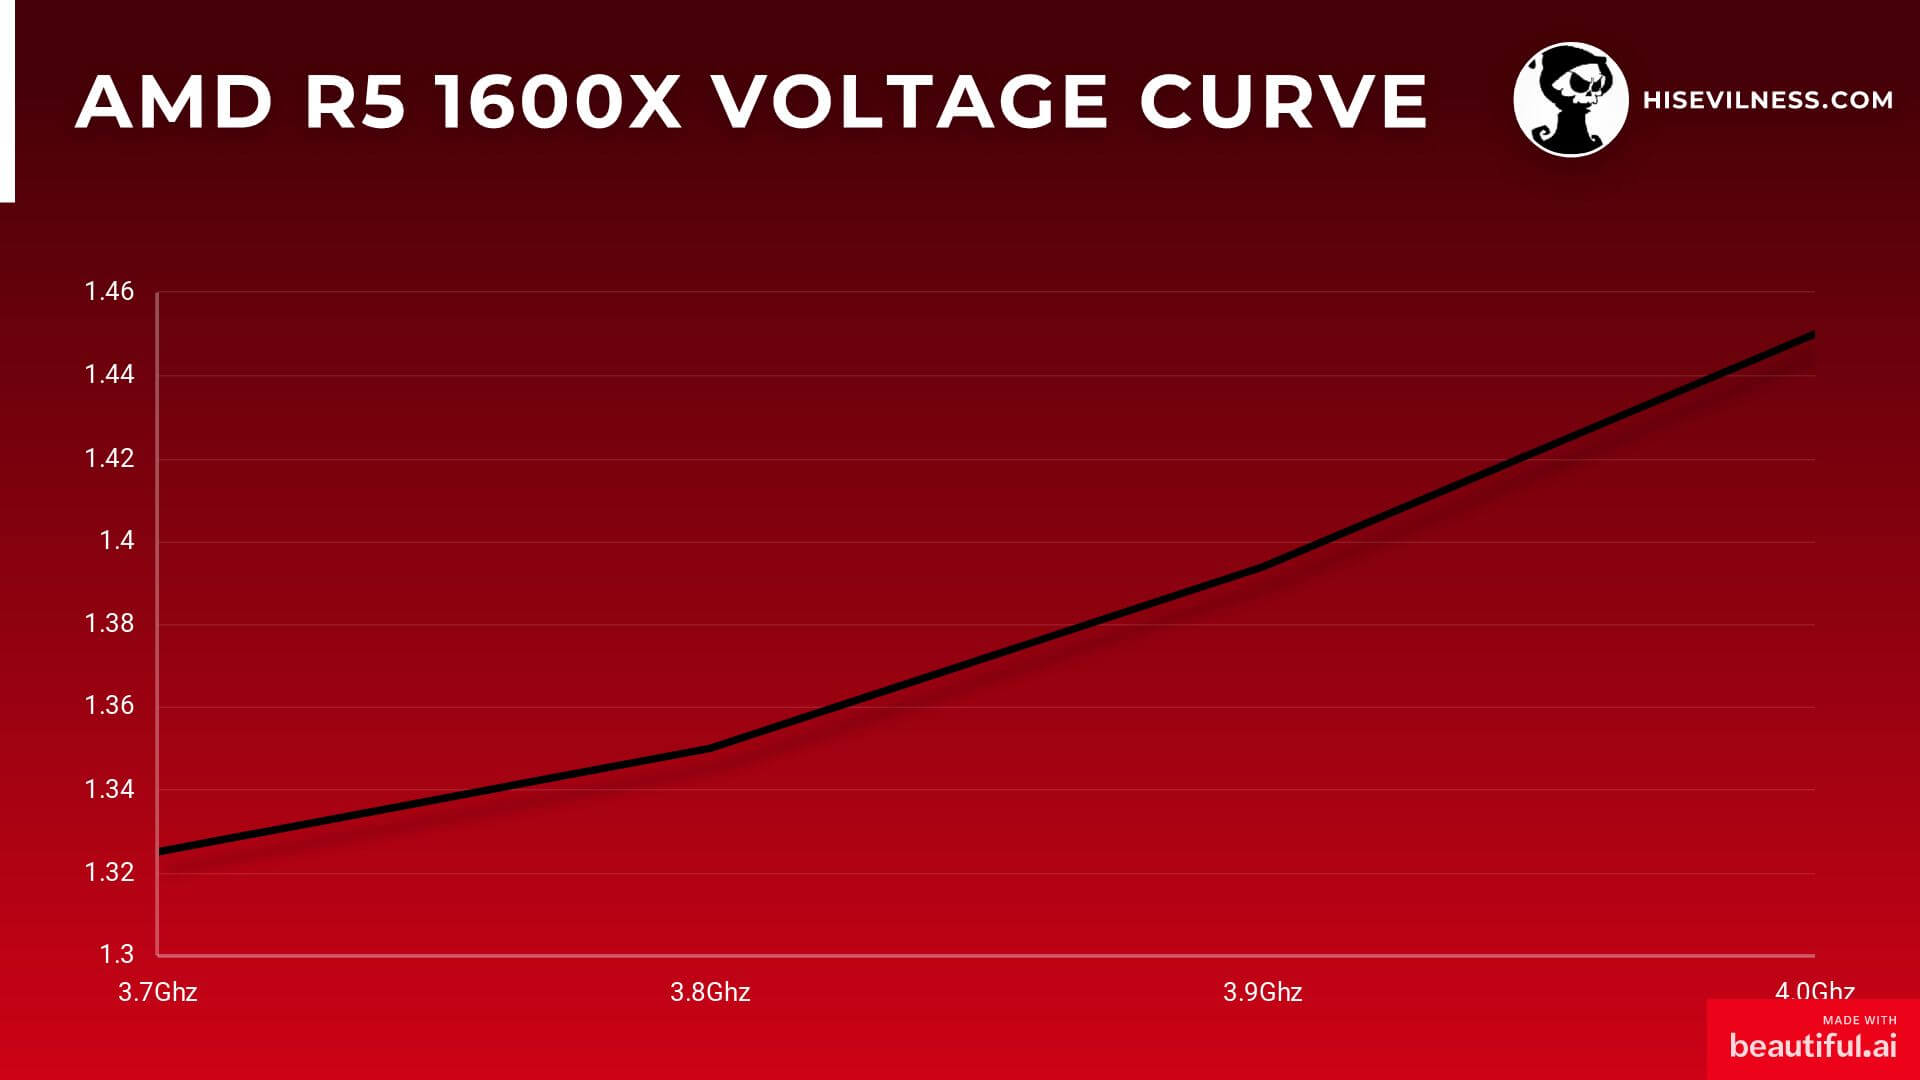 Voltage curve from 3.7Ghz to 4.0Ghz